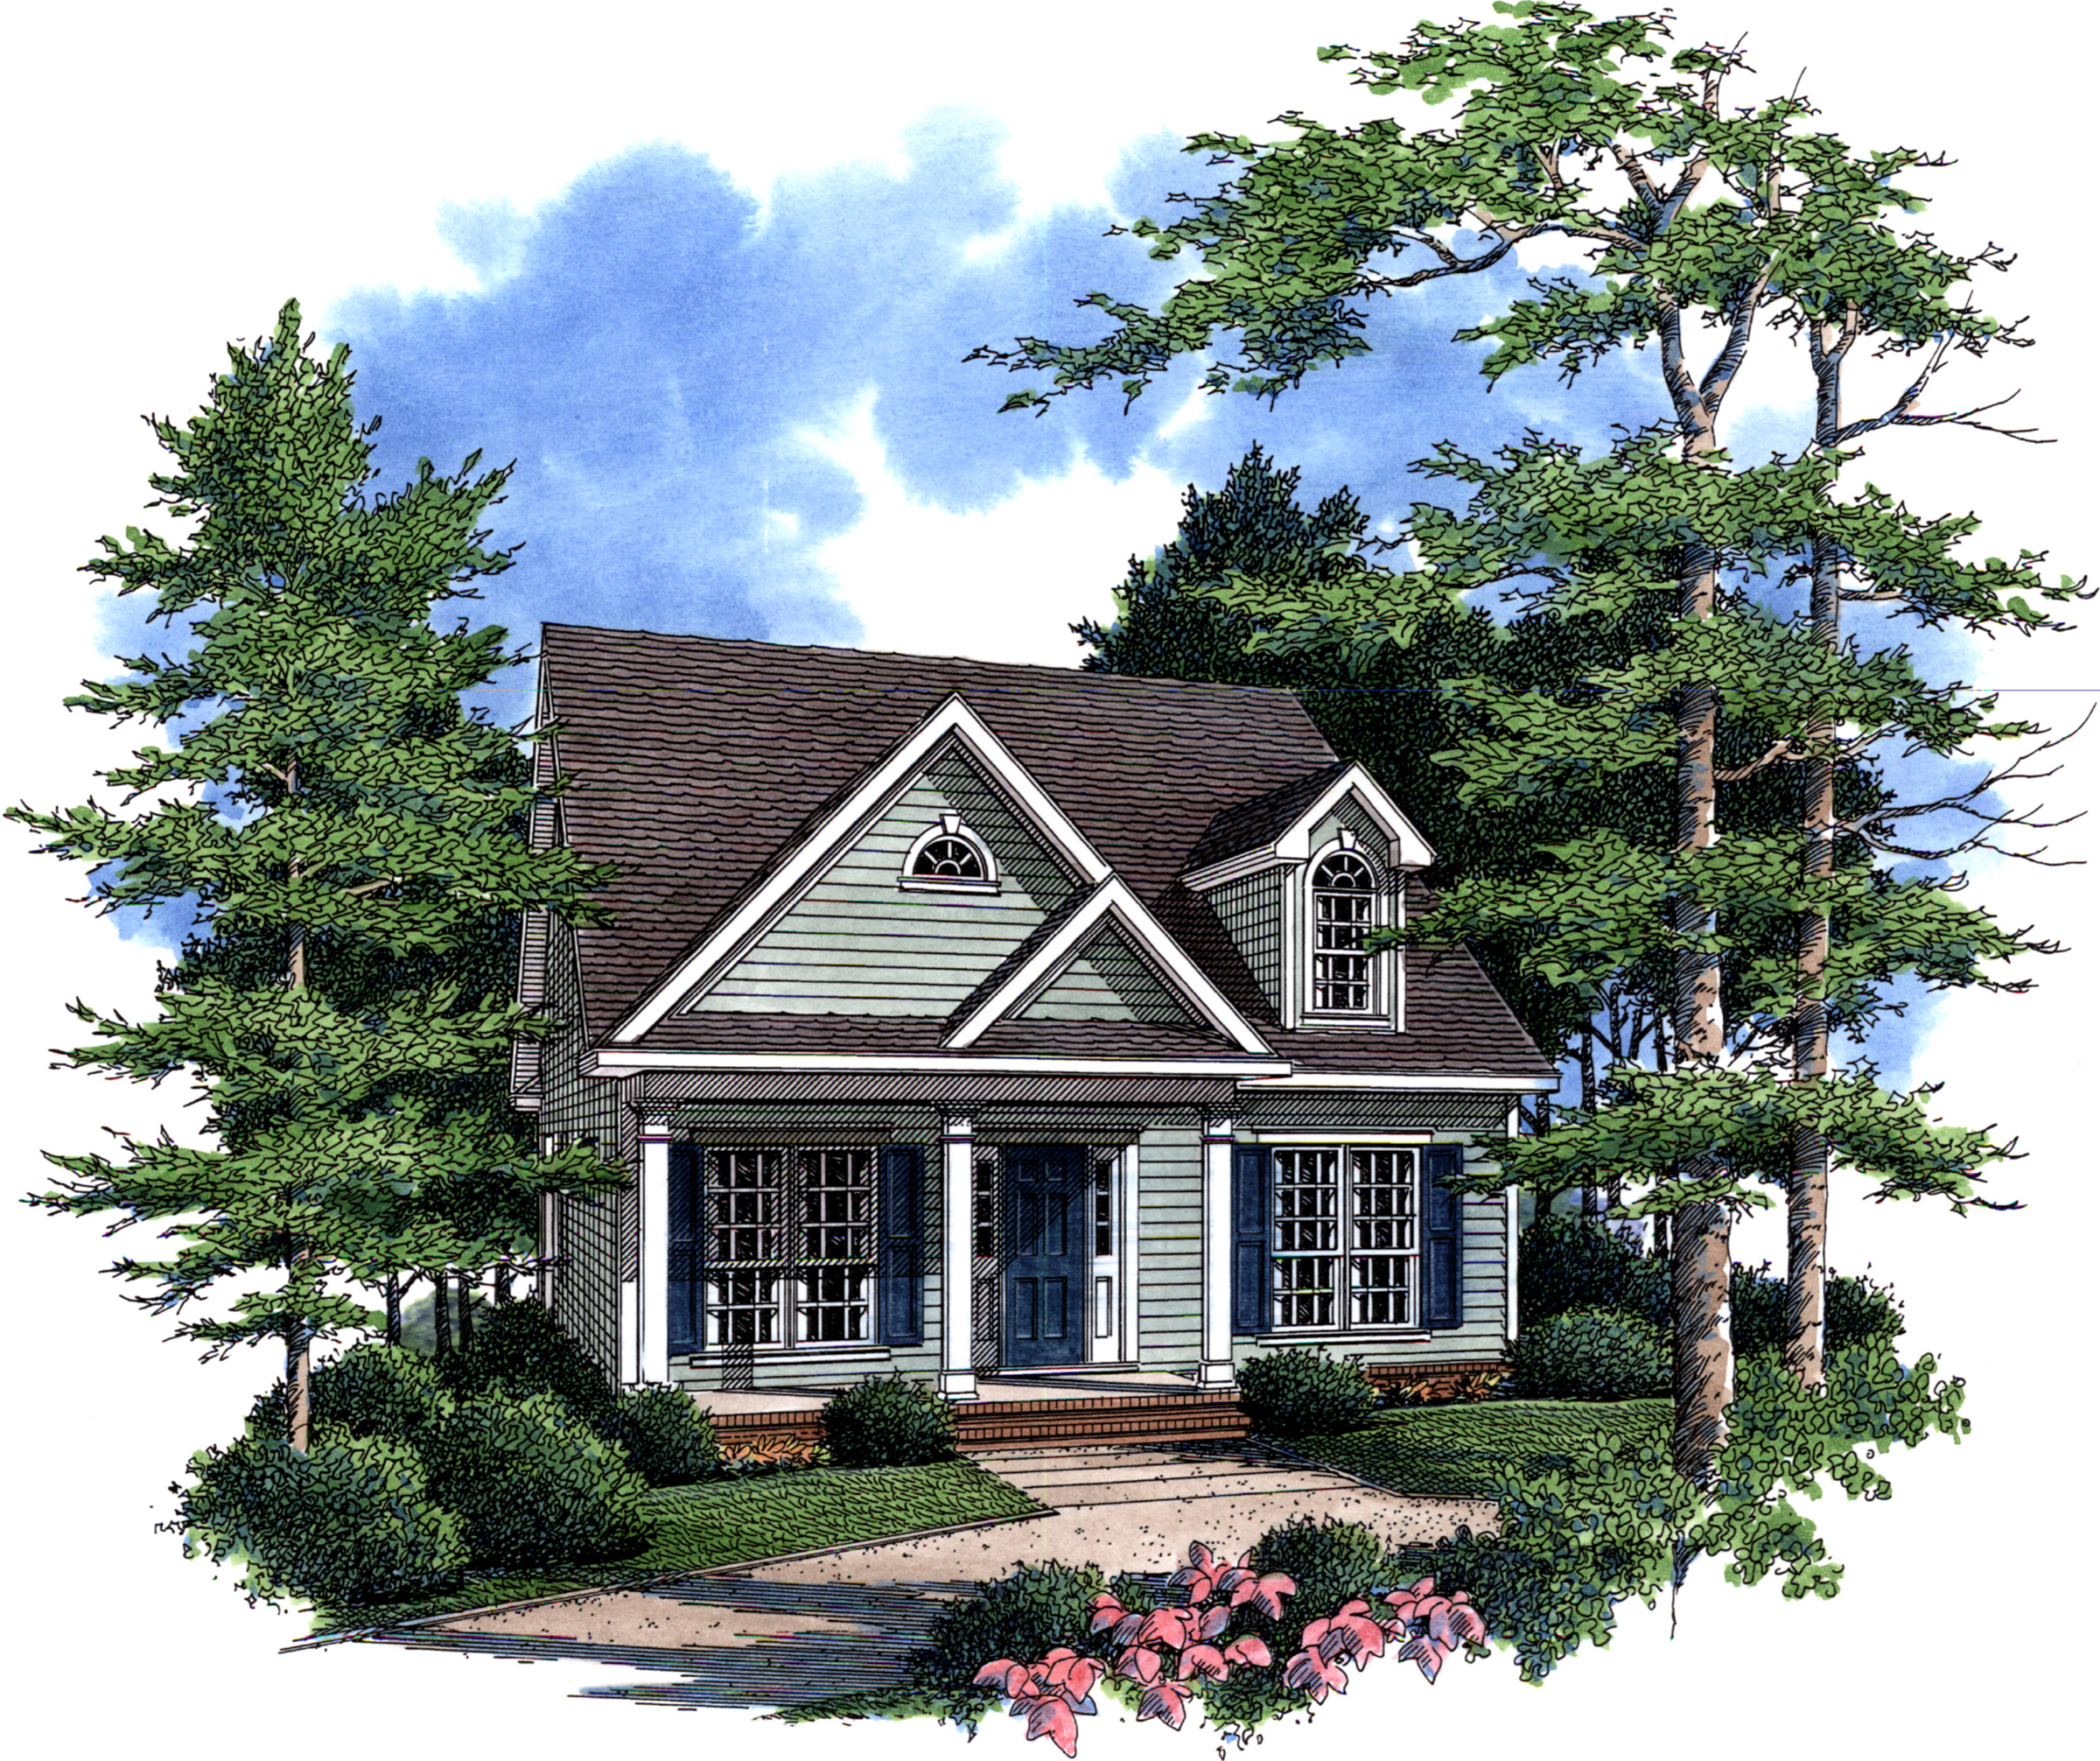 Rustic country cottage 6068rc architectural designs for Rustic country home plans